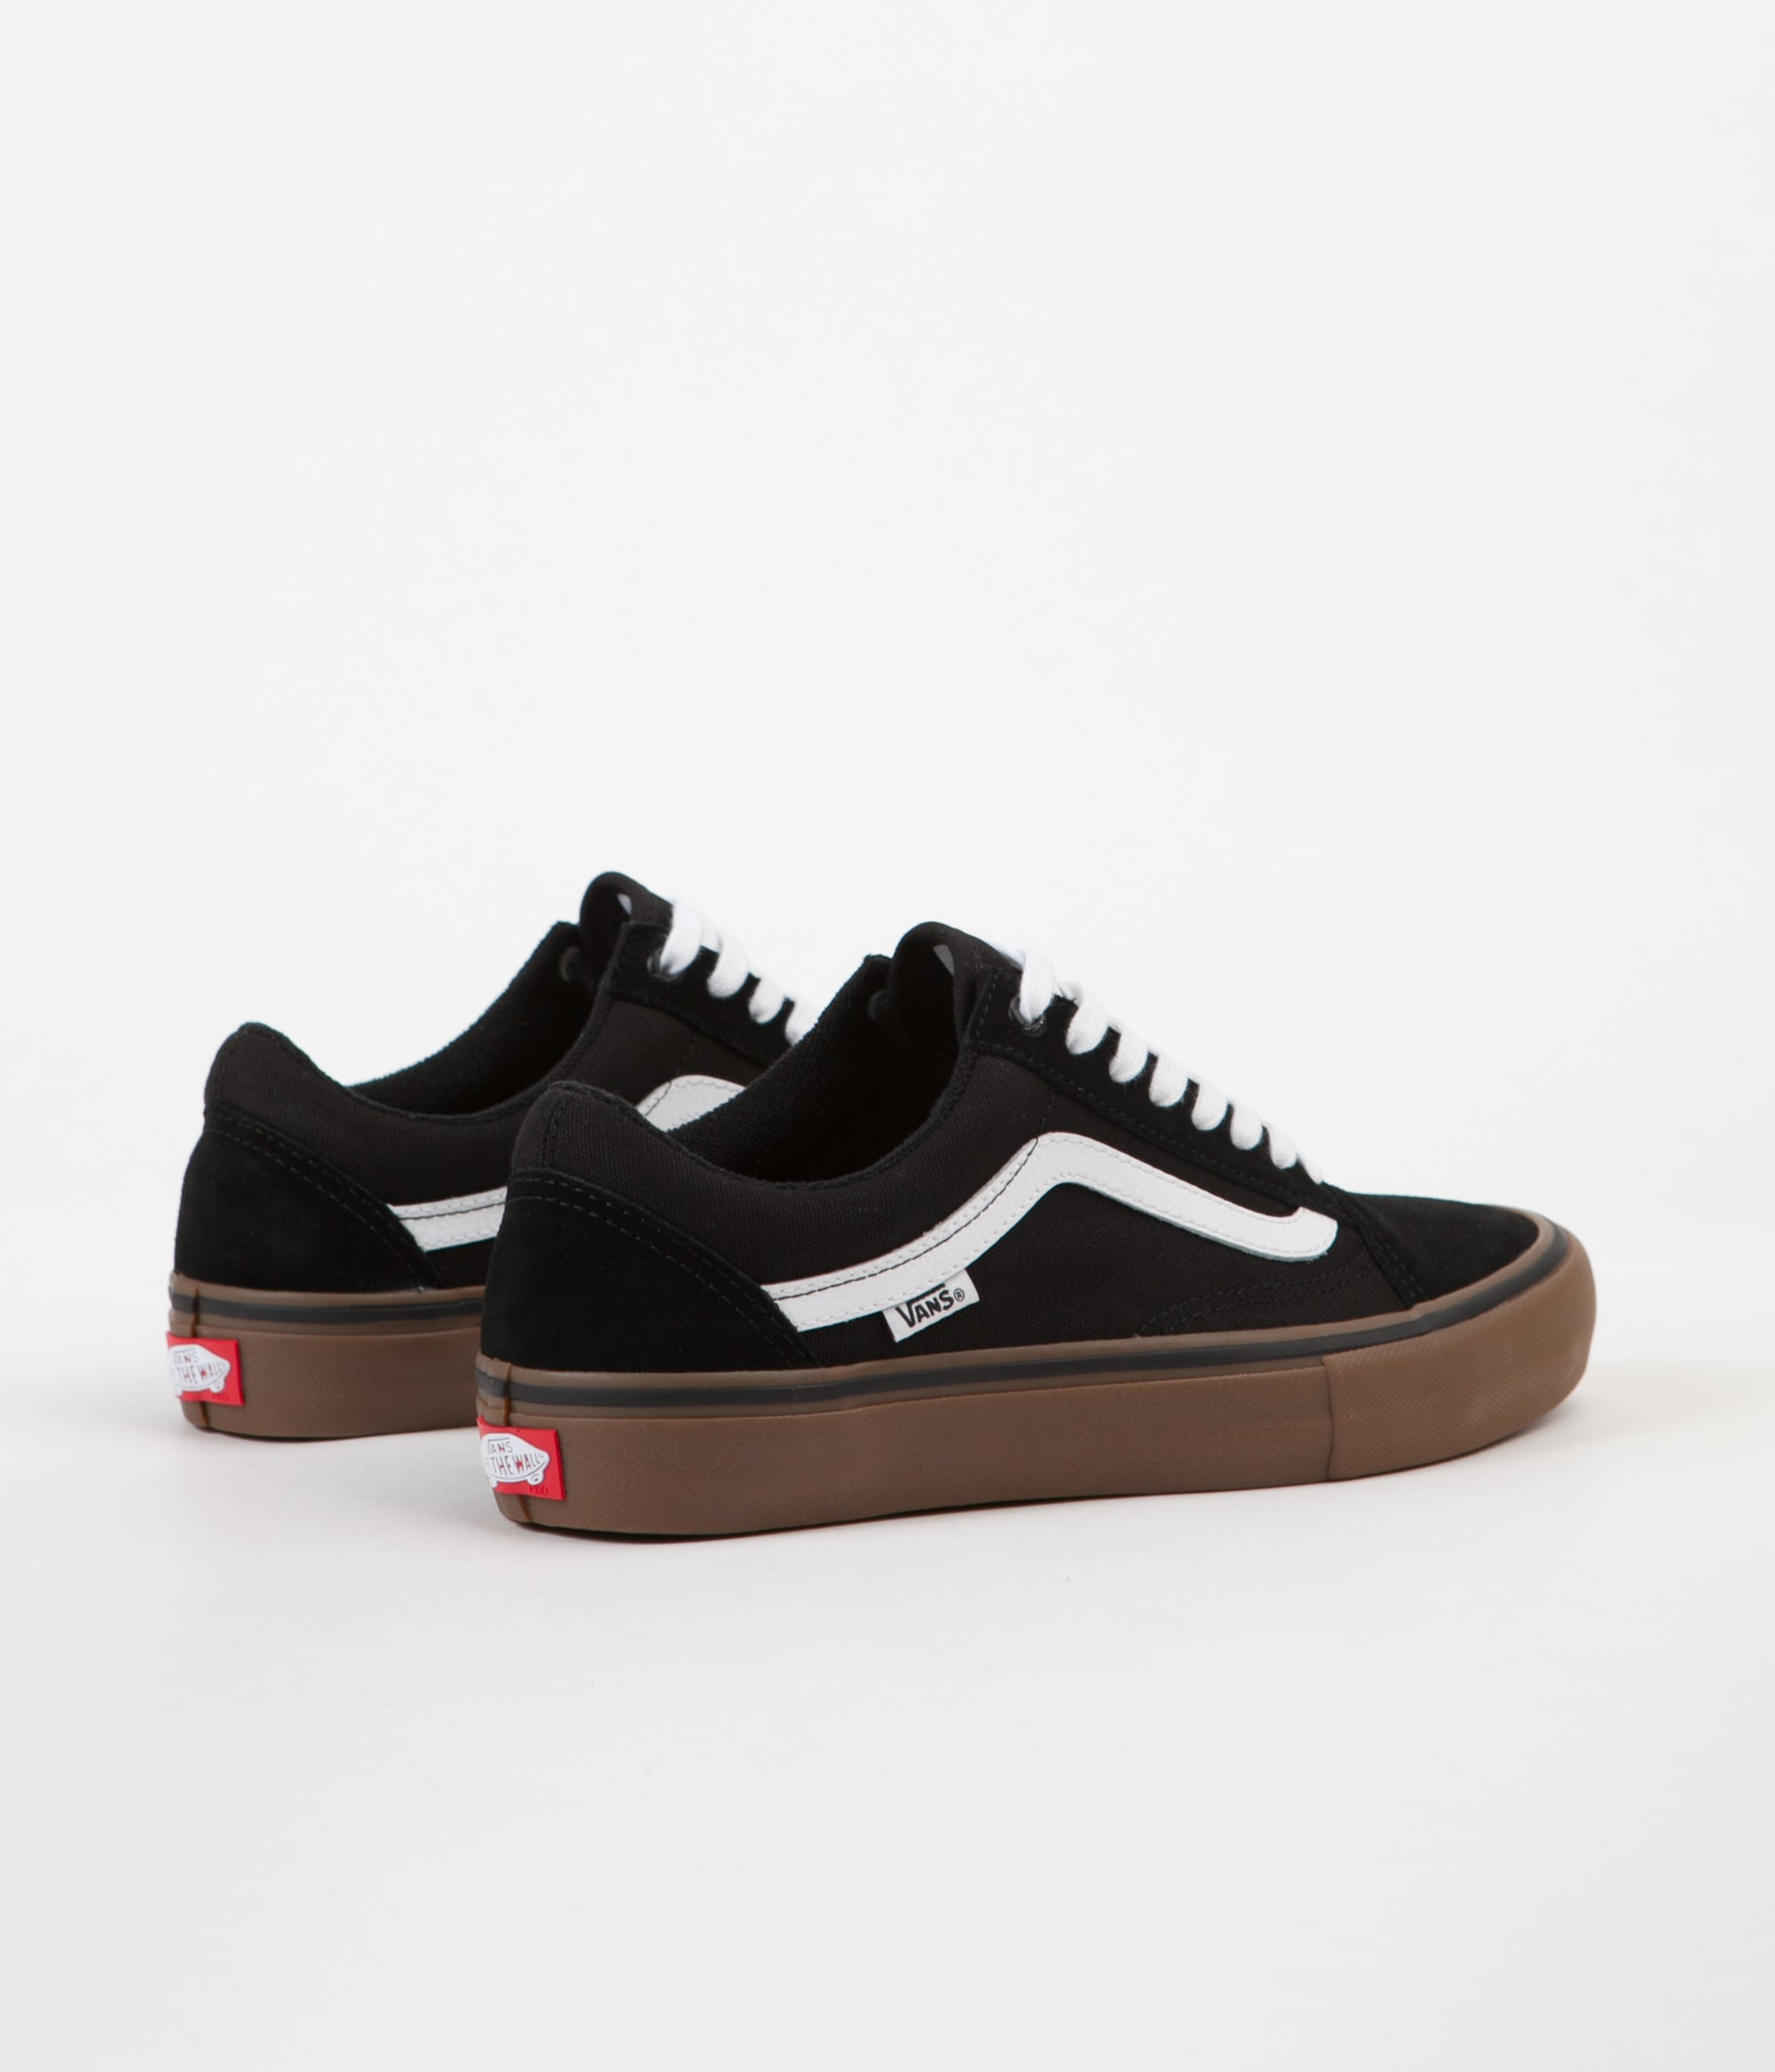 leta efter speical-erbjudande närmare kl Vans Old Skool Pro Shoes - Black / White / Medium Gum | Flatspot